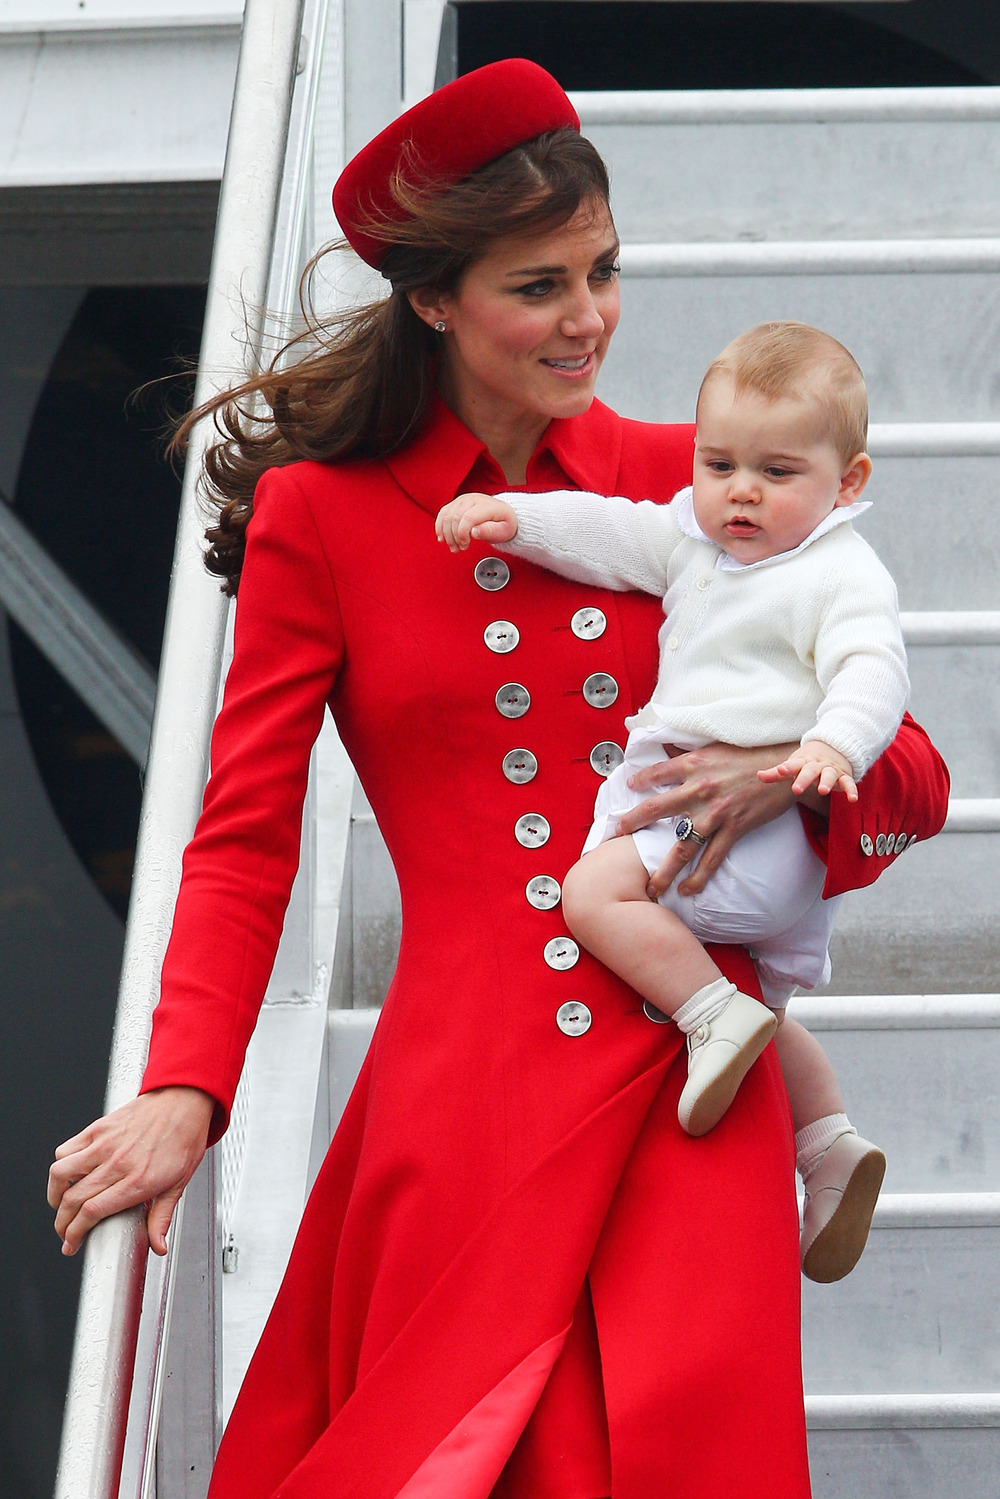 Prince George Beats Out Kate Middleton For Best Dressed Royal!